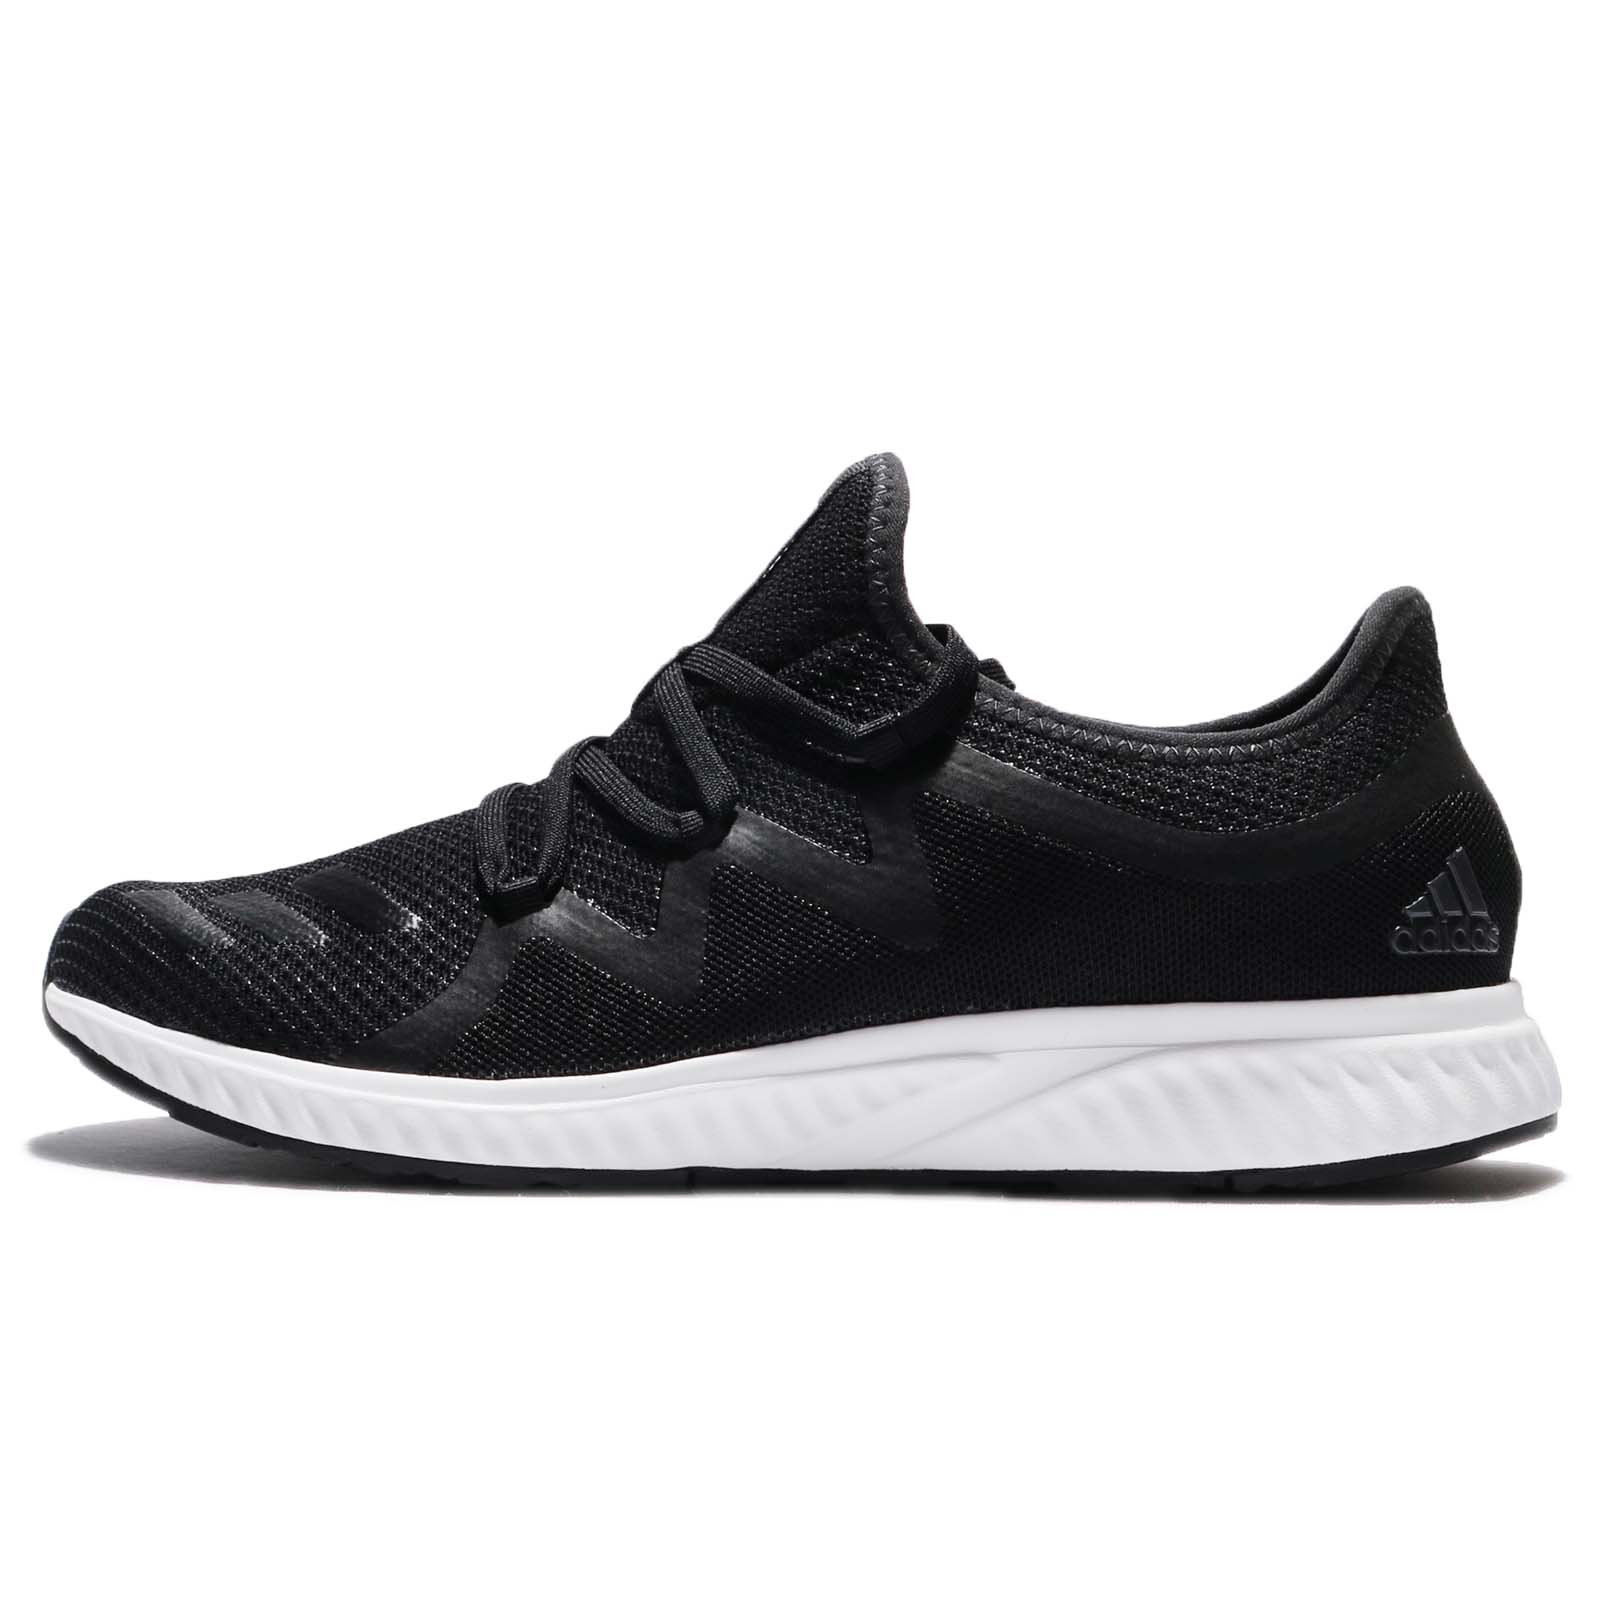 adidas manazero m black white men running shoes sneakers. Black Bedroom Furniture Sets. Home Design Ideas